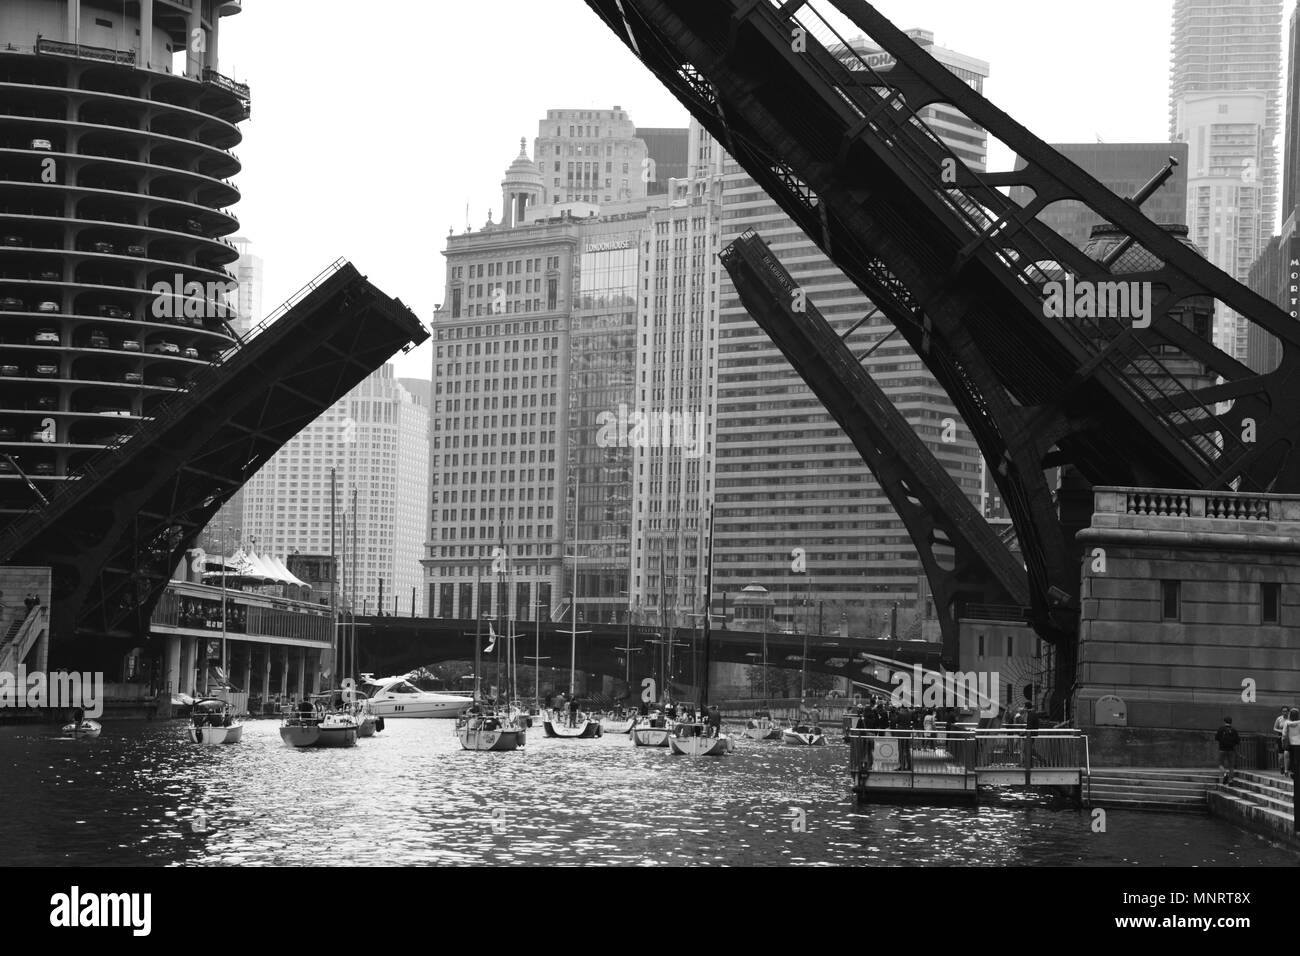 The downtown bridges in Chicago are raised to let sailboats pass during the spring boat run to Lake Michigan. - Stock Image